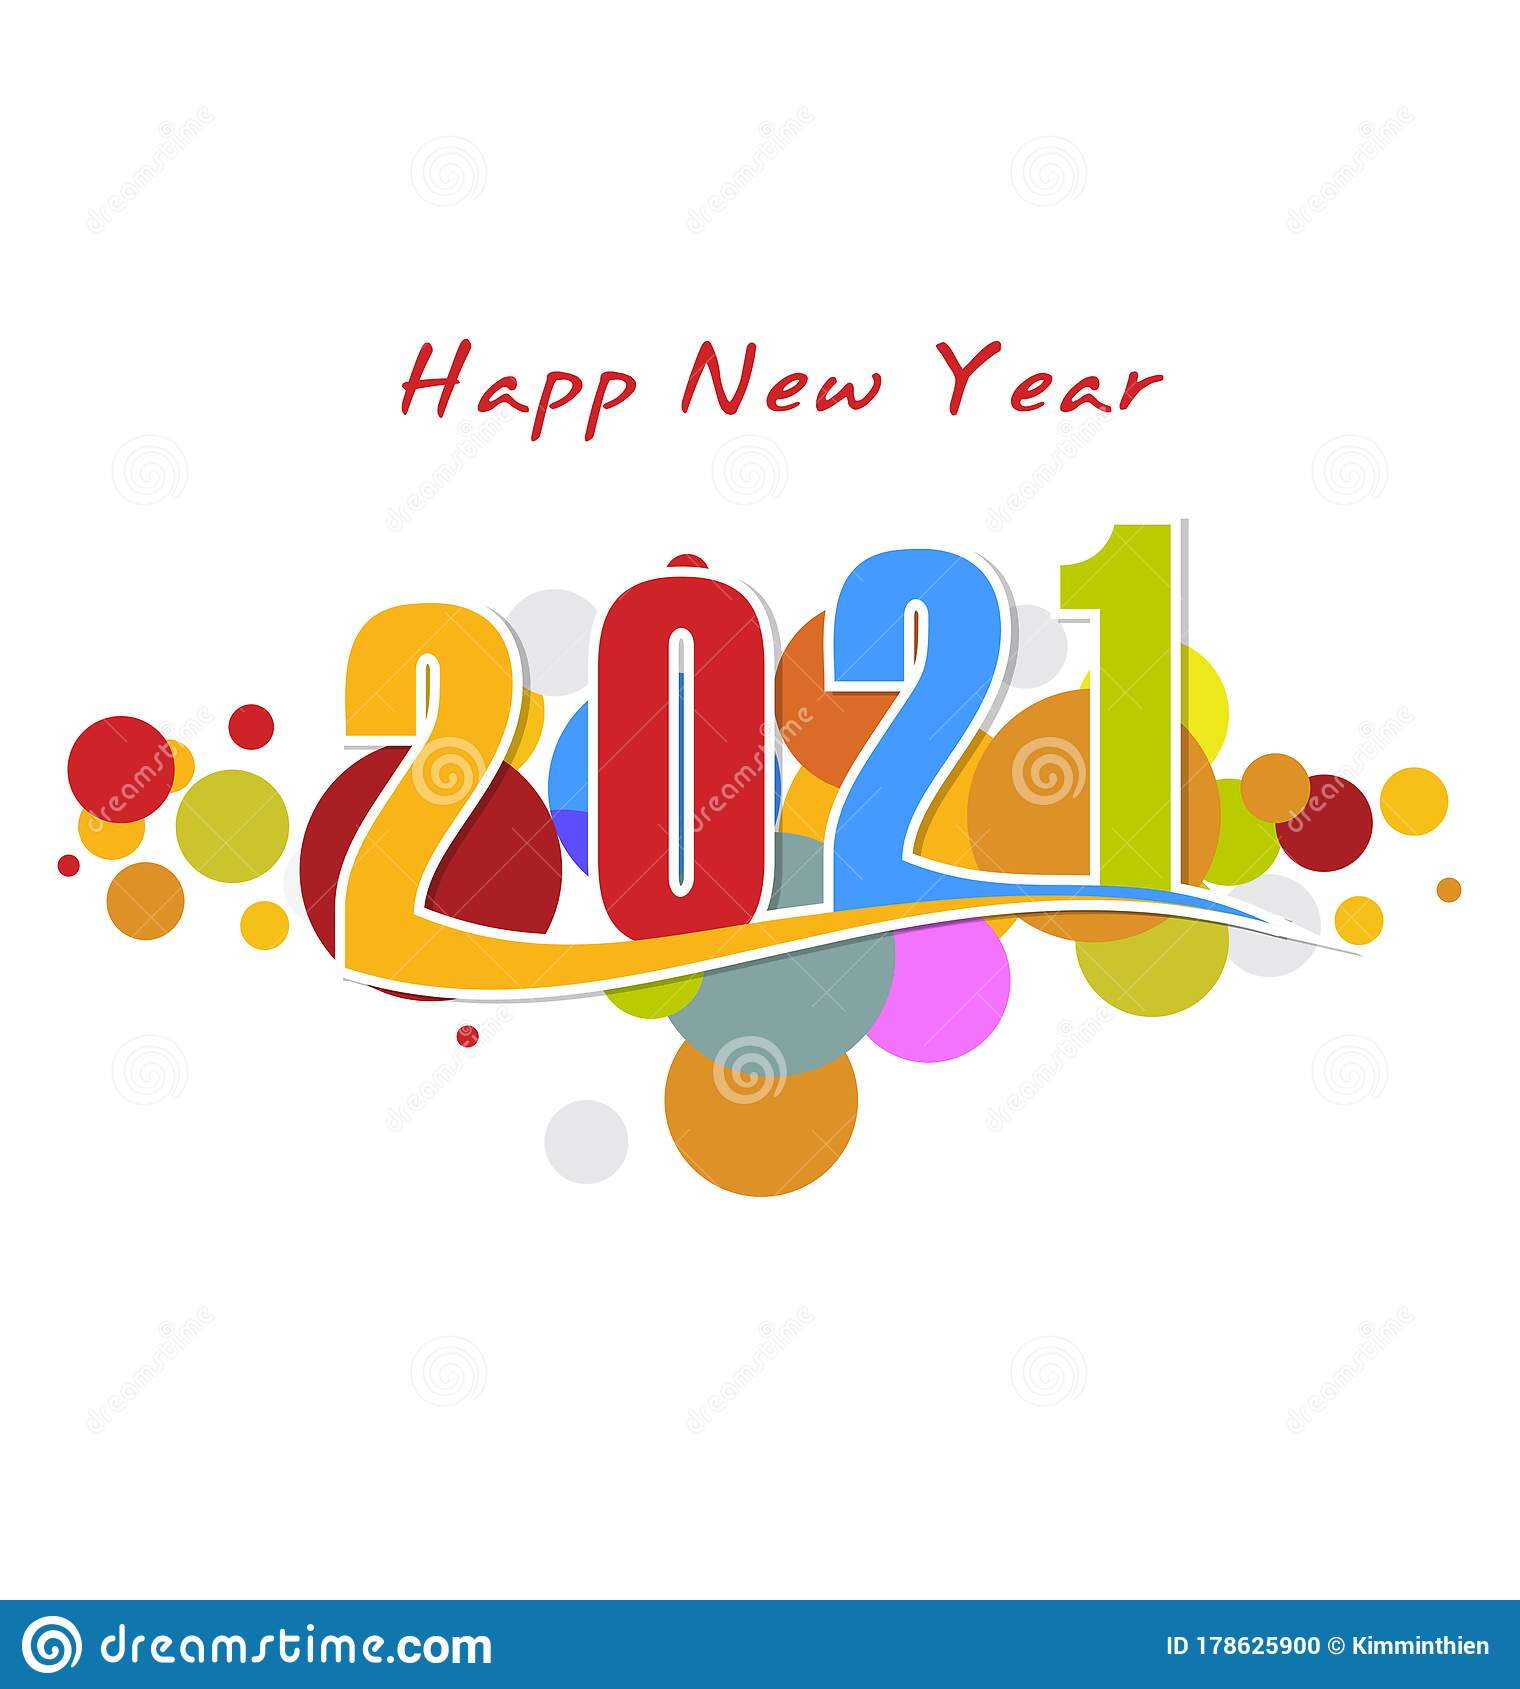 Happy new year 2021 stock vector. Illustration of abstract ...